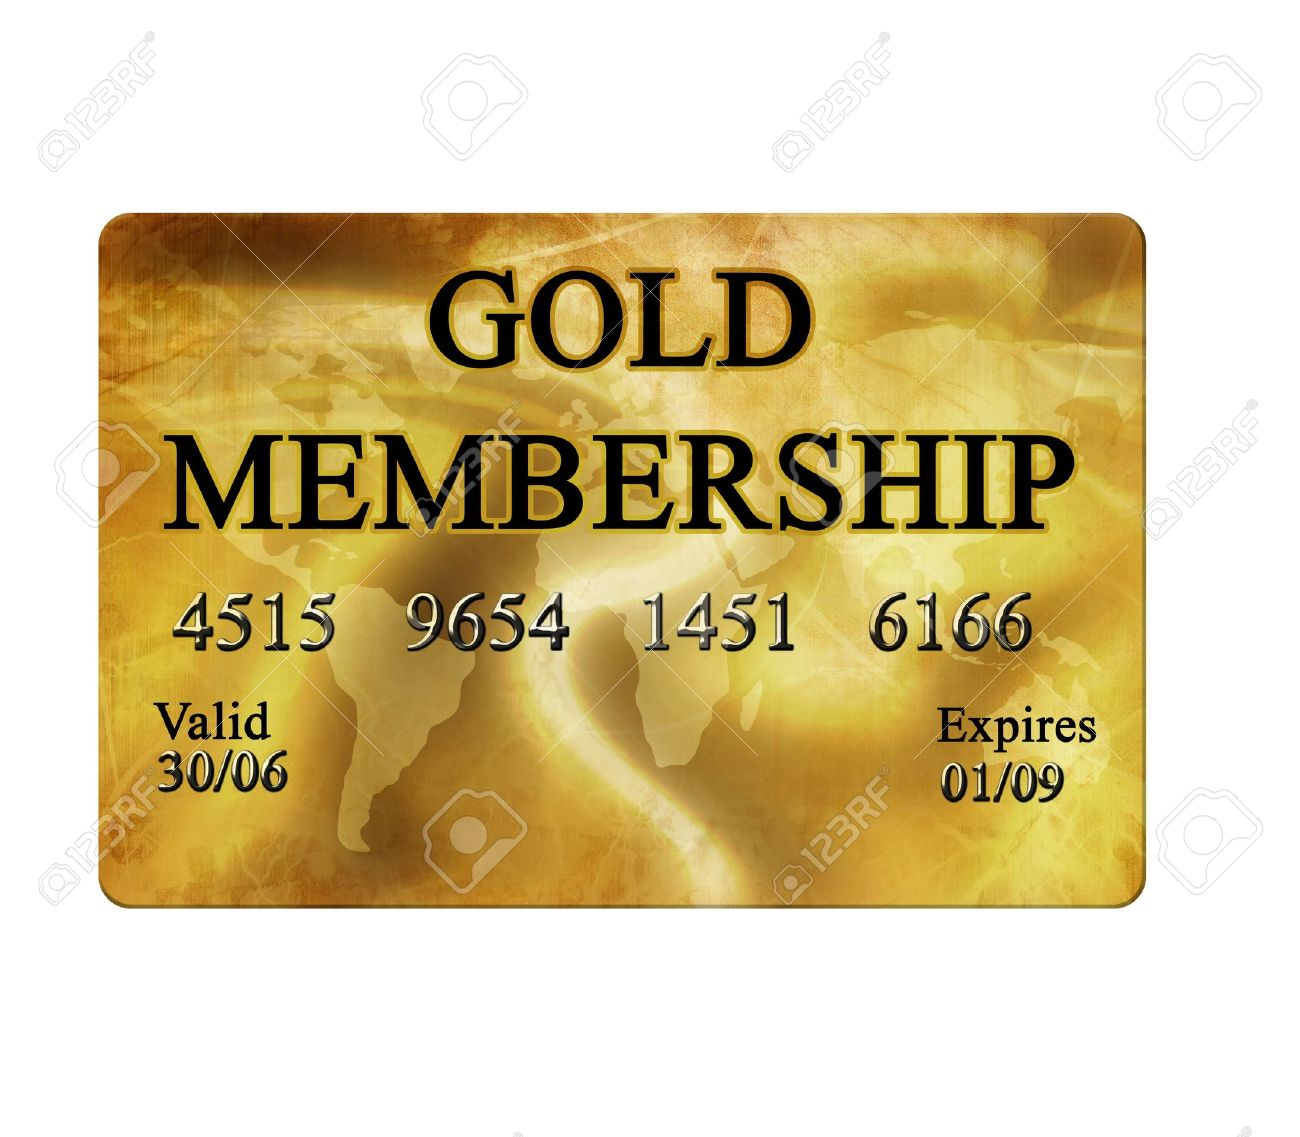 Gold Membership Card On White Background Stock Photo   2990875